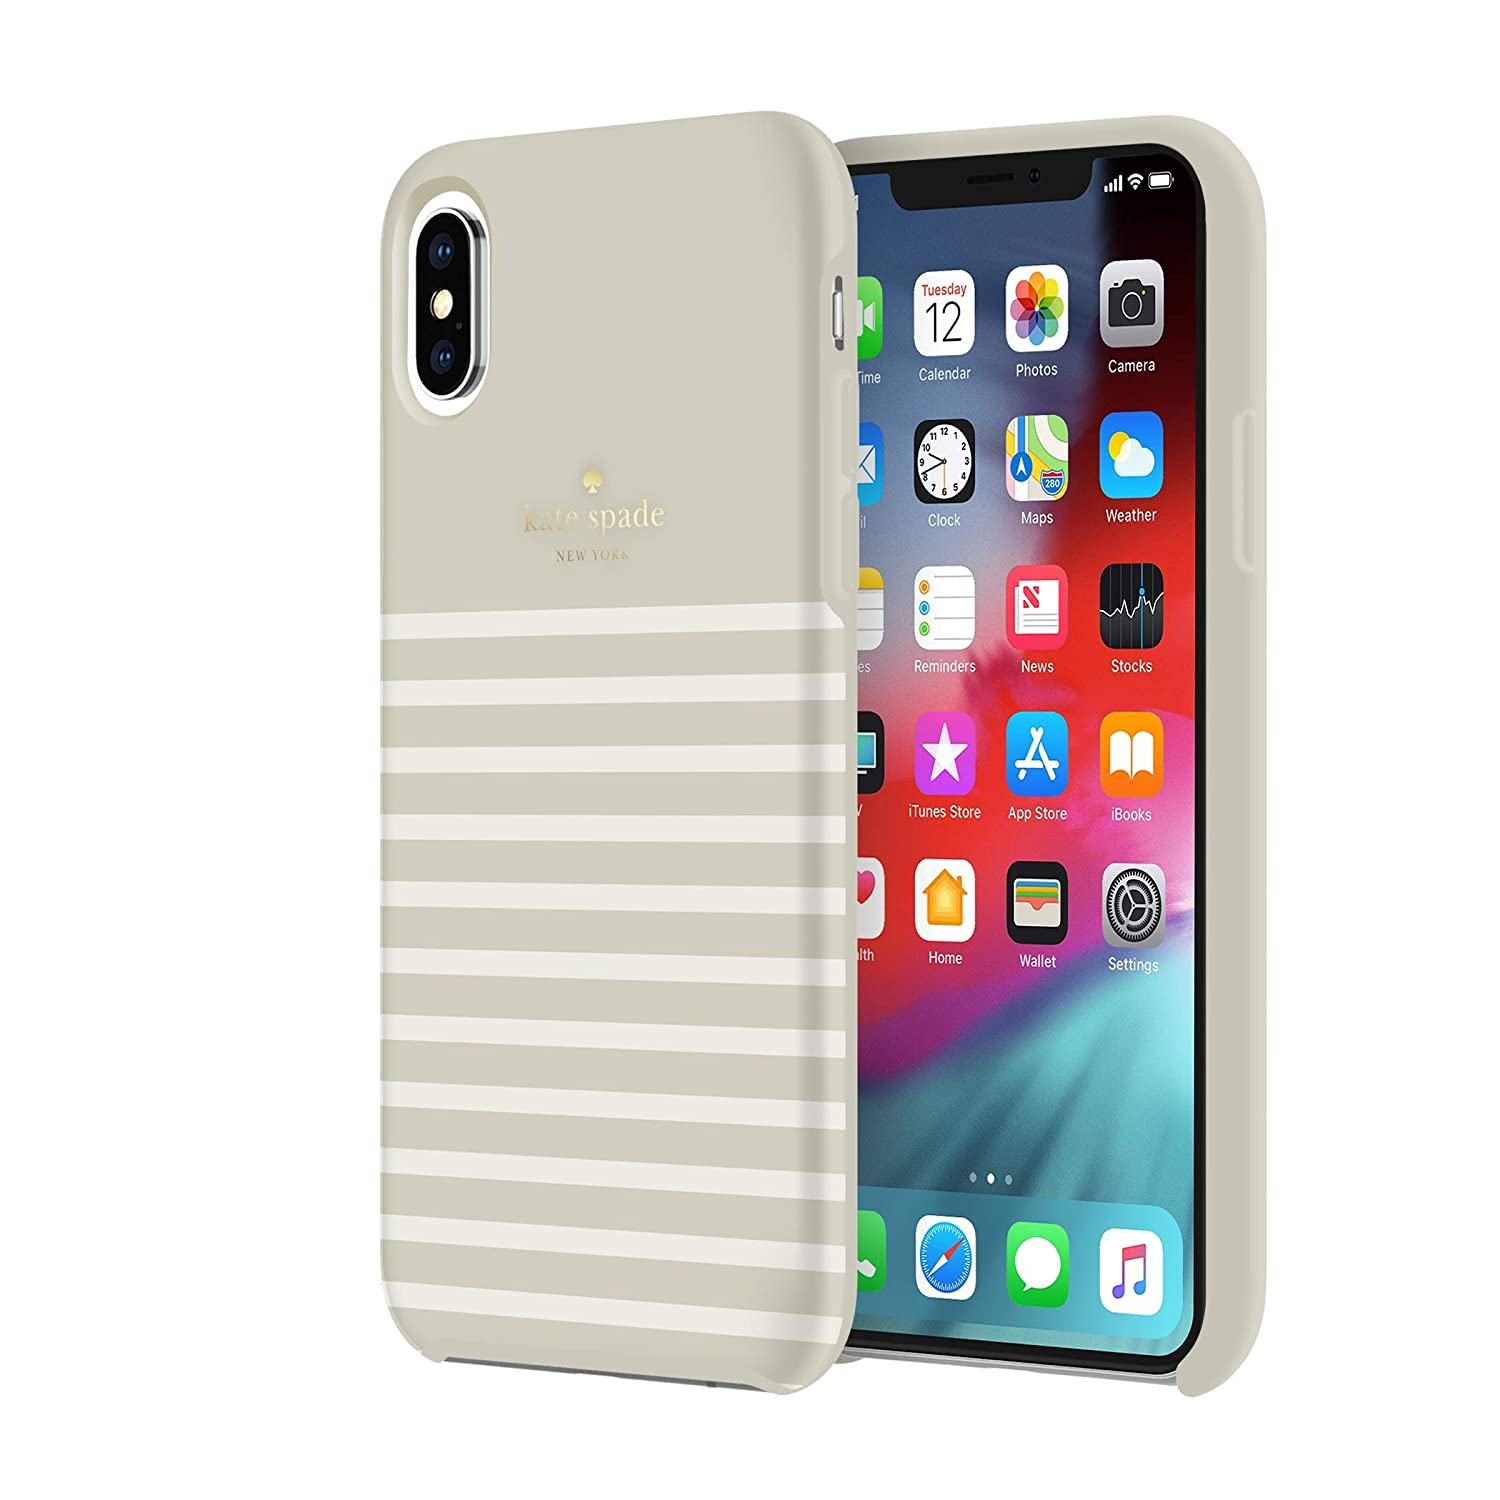 Amazon.com: Kate Spade Soft Touch Case for iPhone XS Max - Feeder Stripe Clocktower/Cream: Cell Phones & Accessories